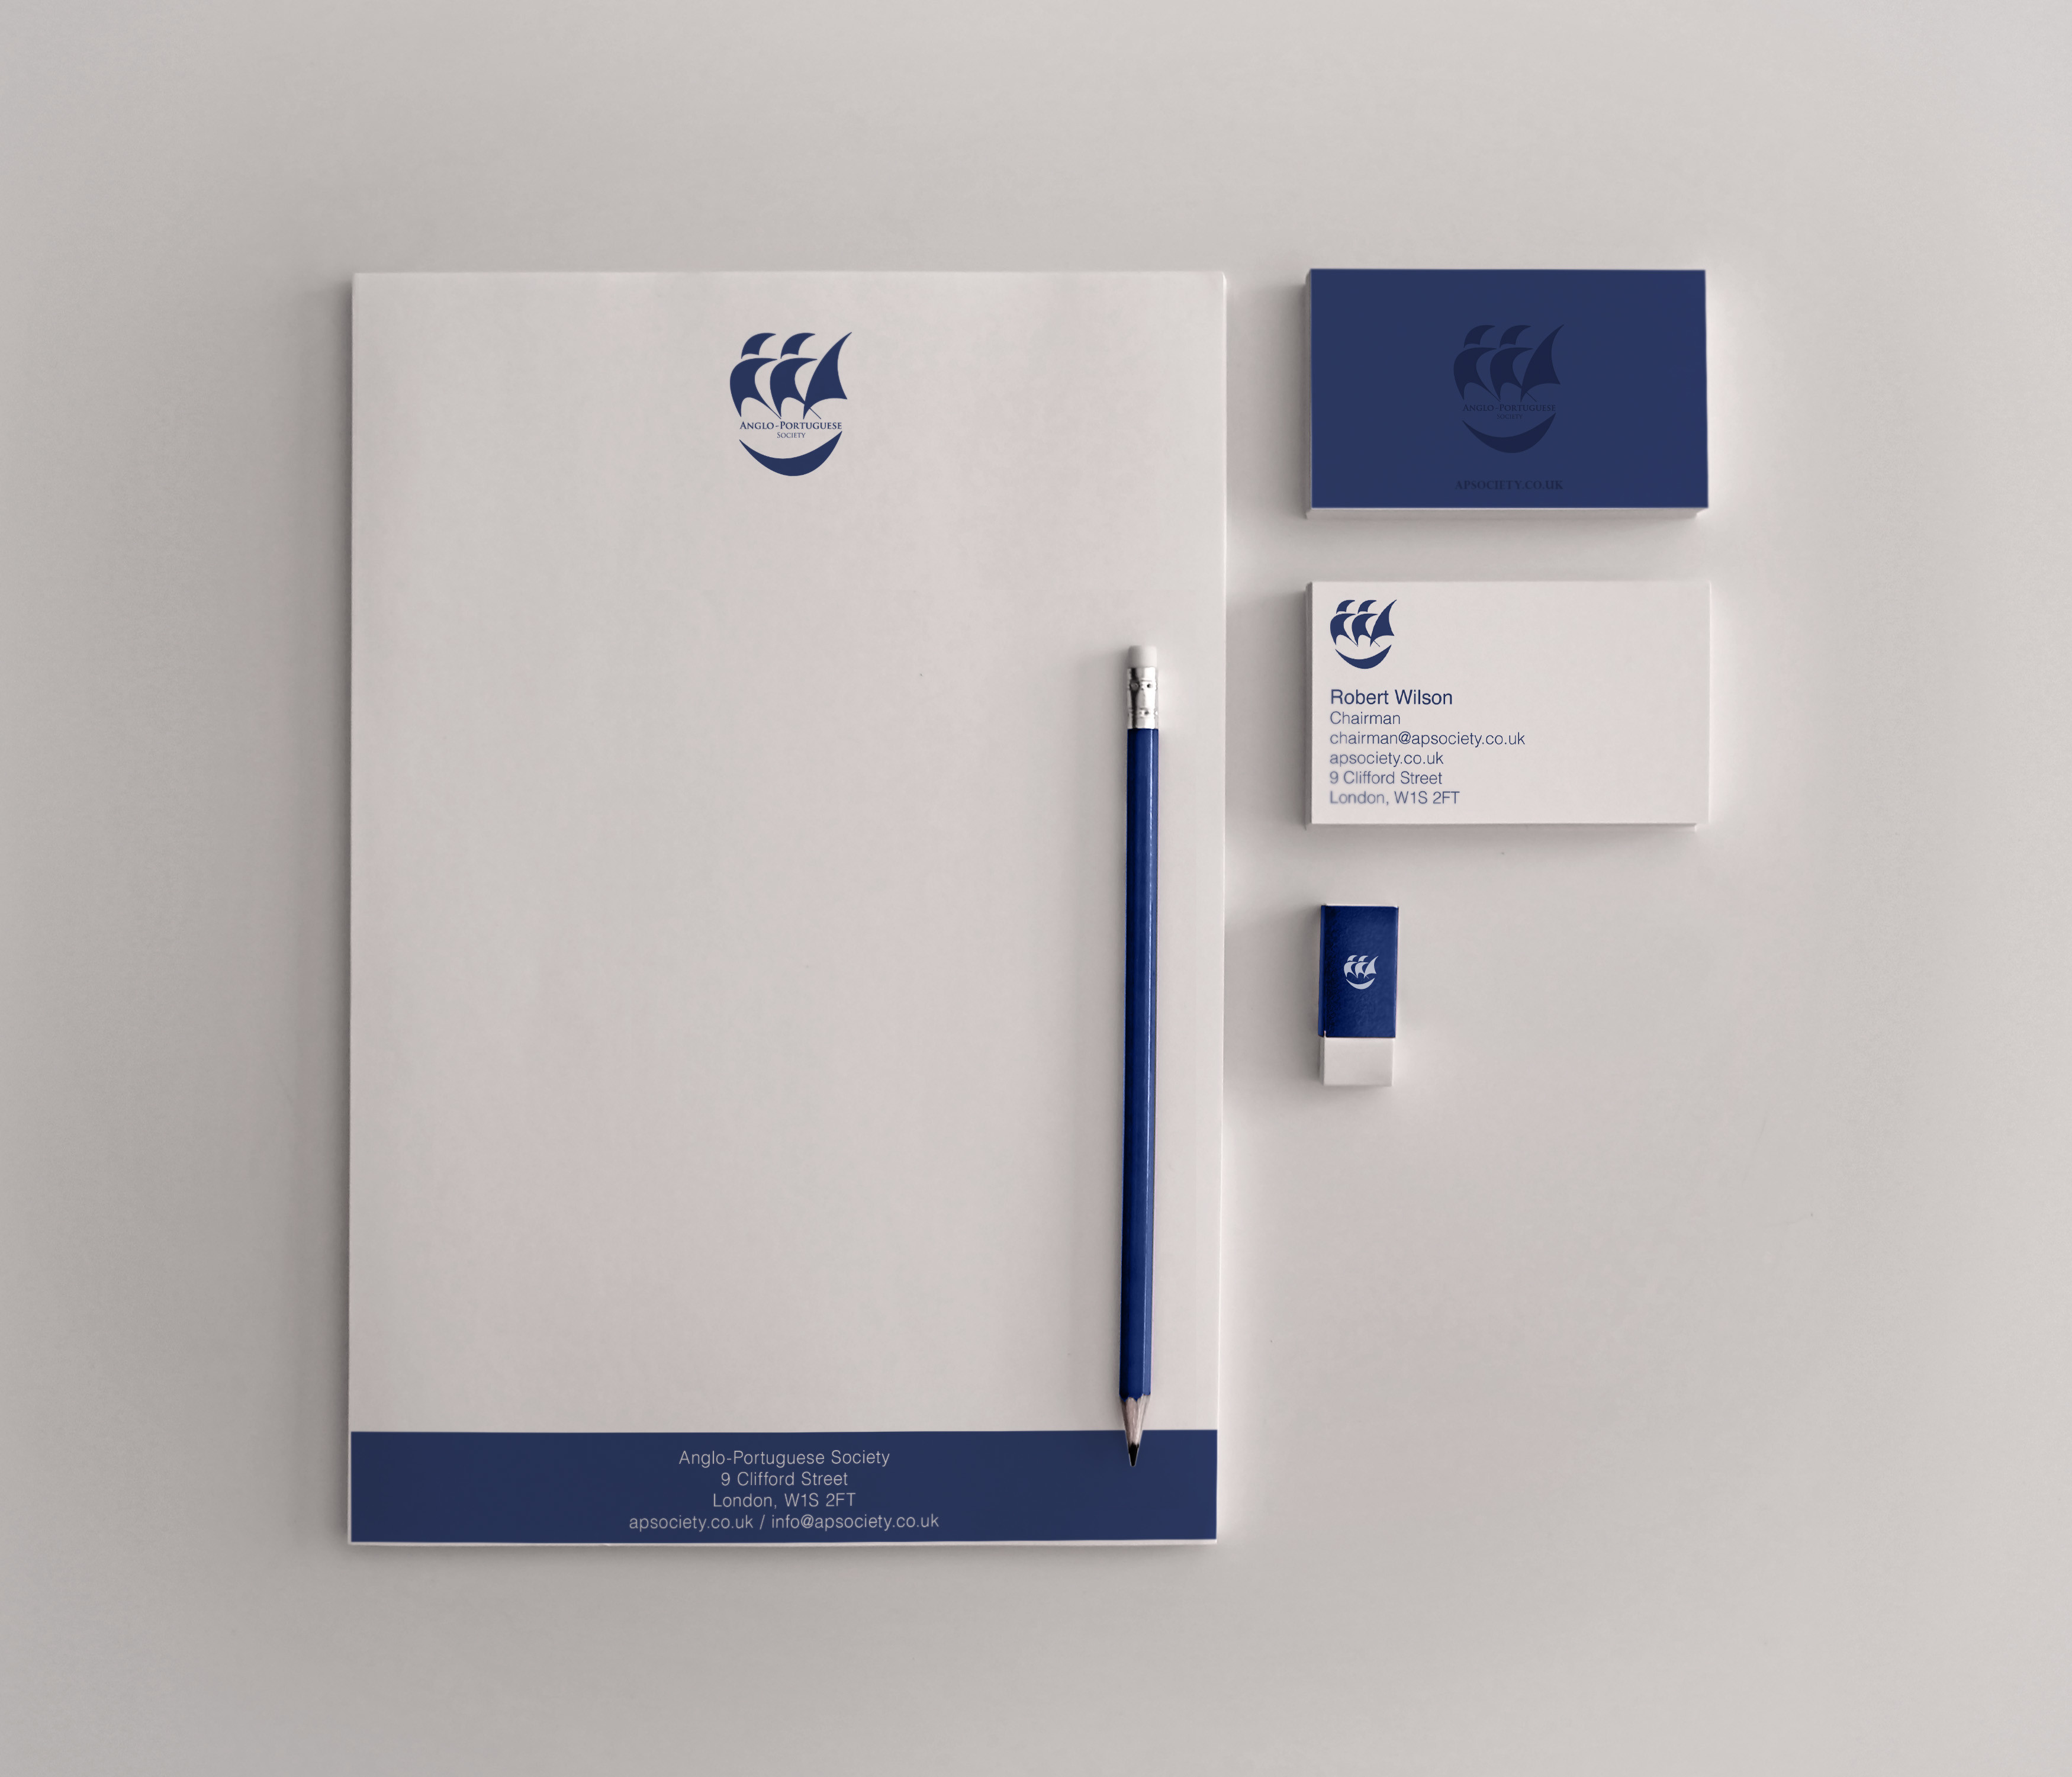 apsociety-stationery-mockup